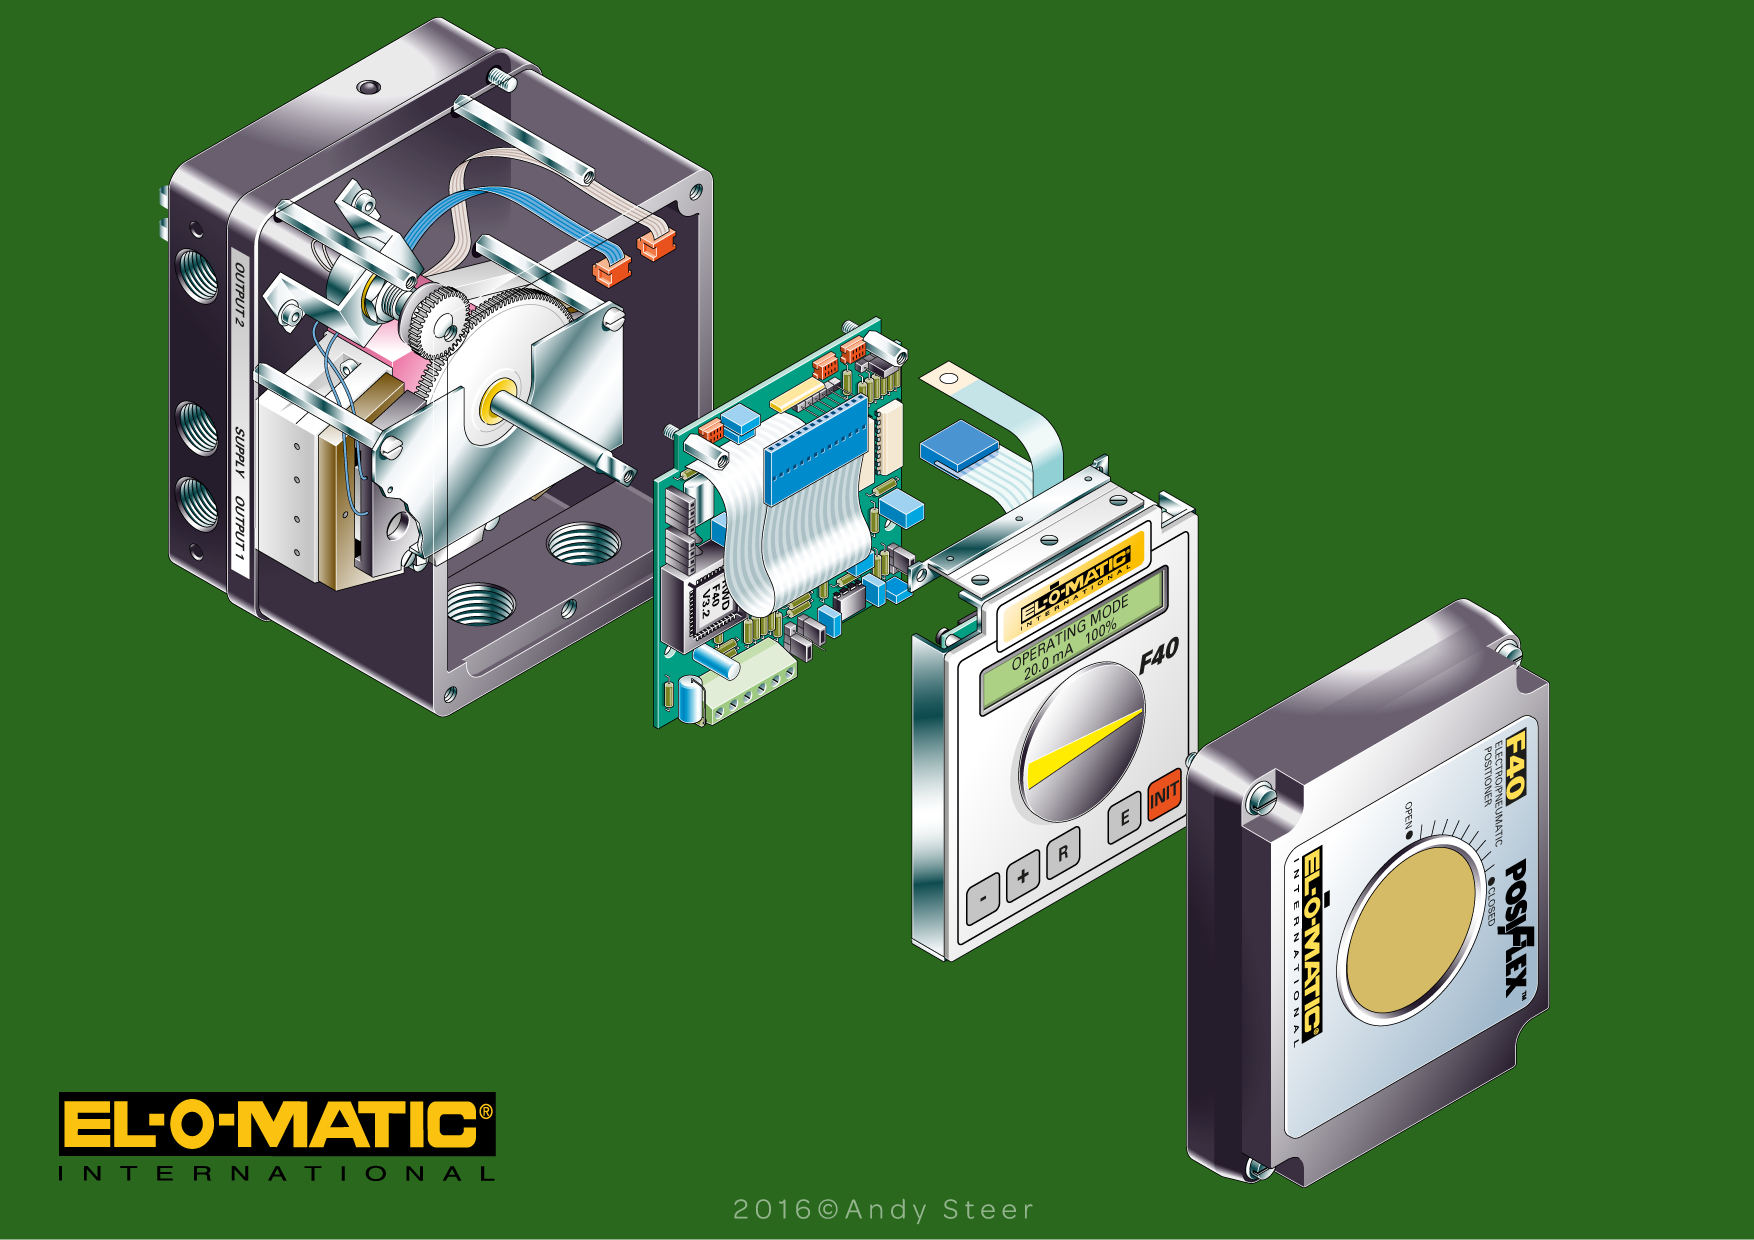 Elomatic F40 exploded view | exploded view | Exploded view